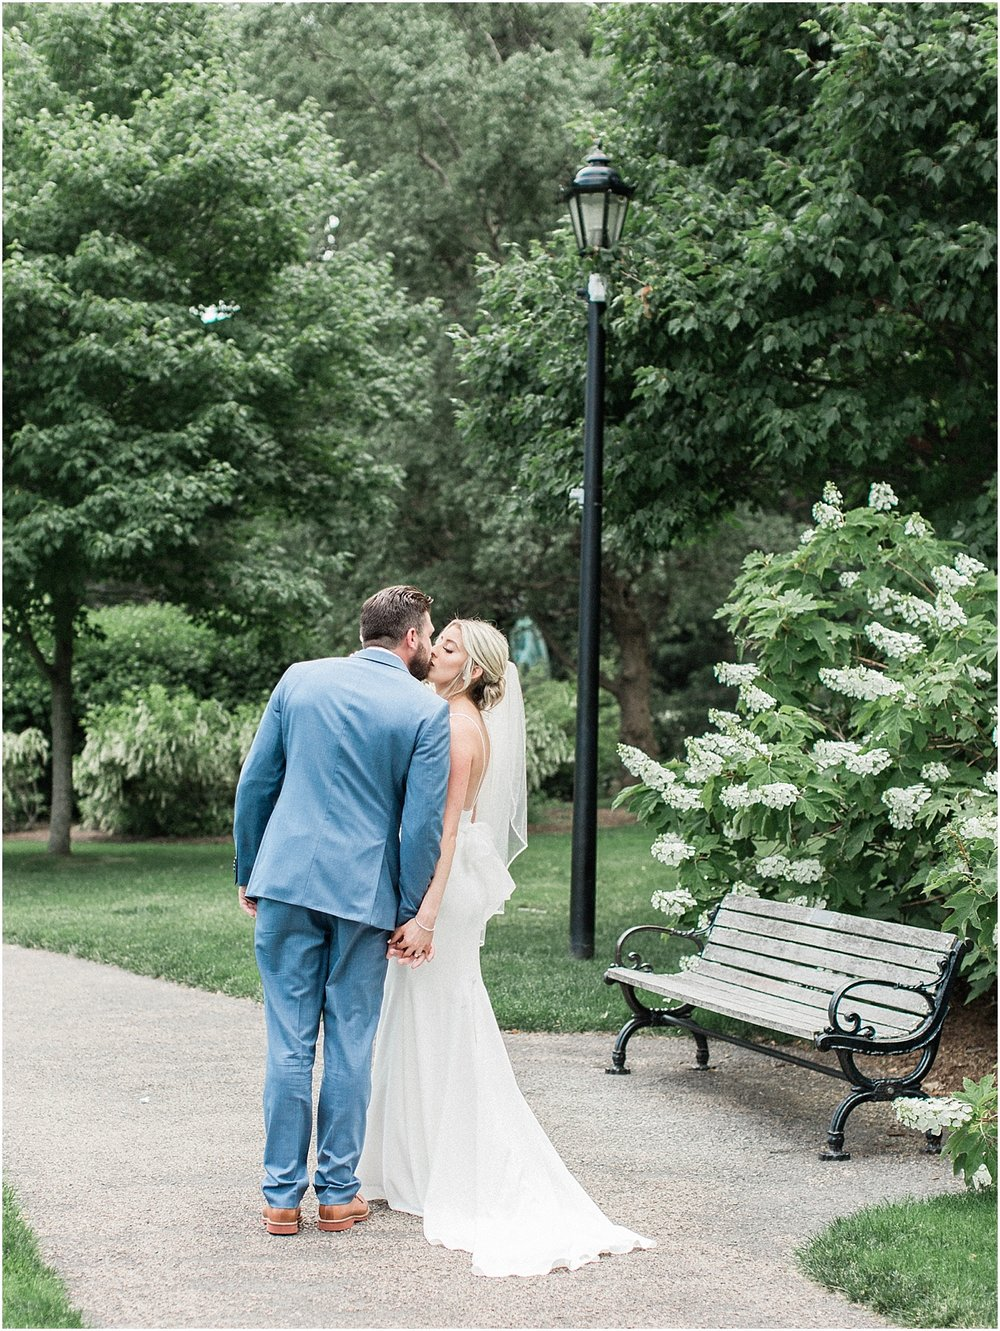 lindsey_paul_indian_pond_country_club_wild_dahlia_brewster_gardens_plymouth_cape_cod_boston_wedding_photographer_meredith_jane_photography_photo_0376.jpg